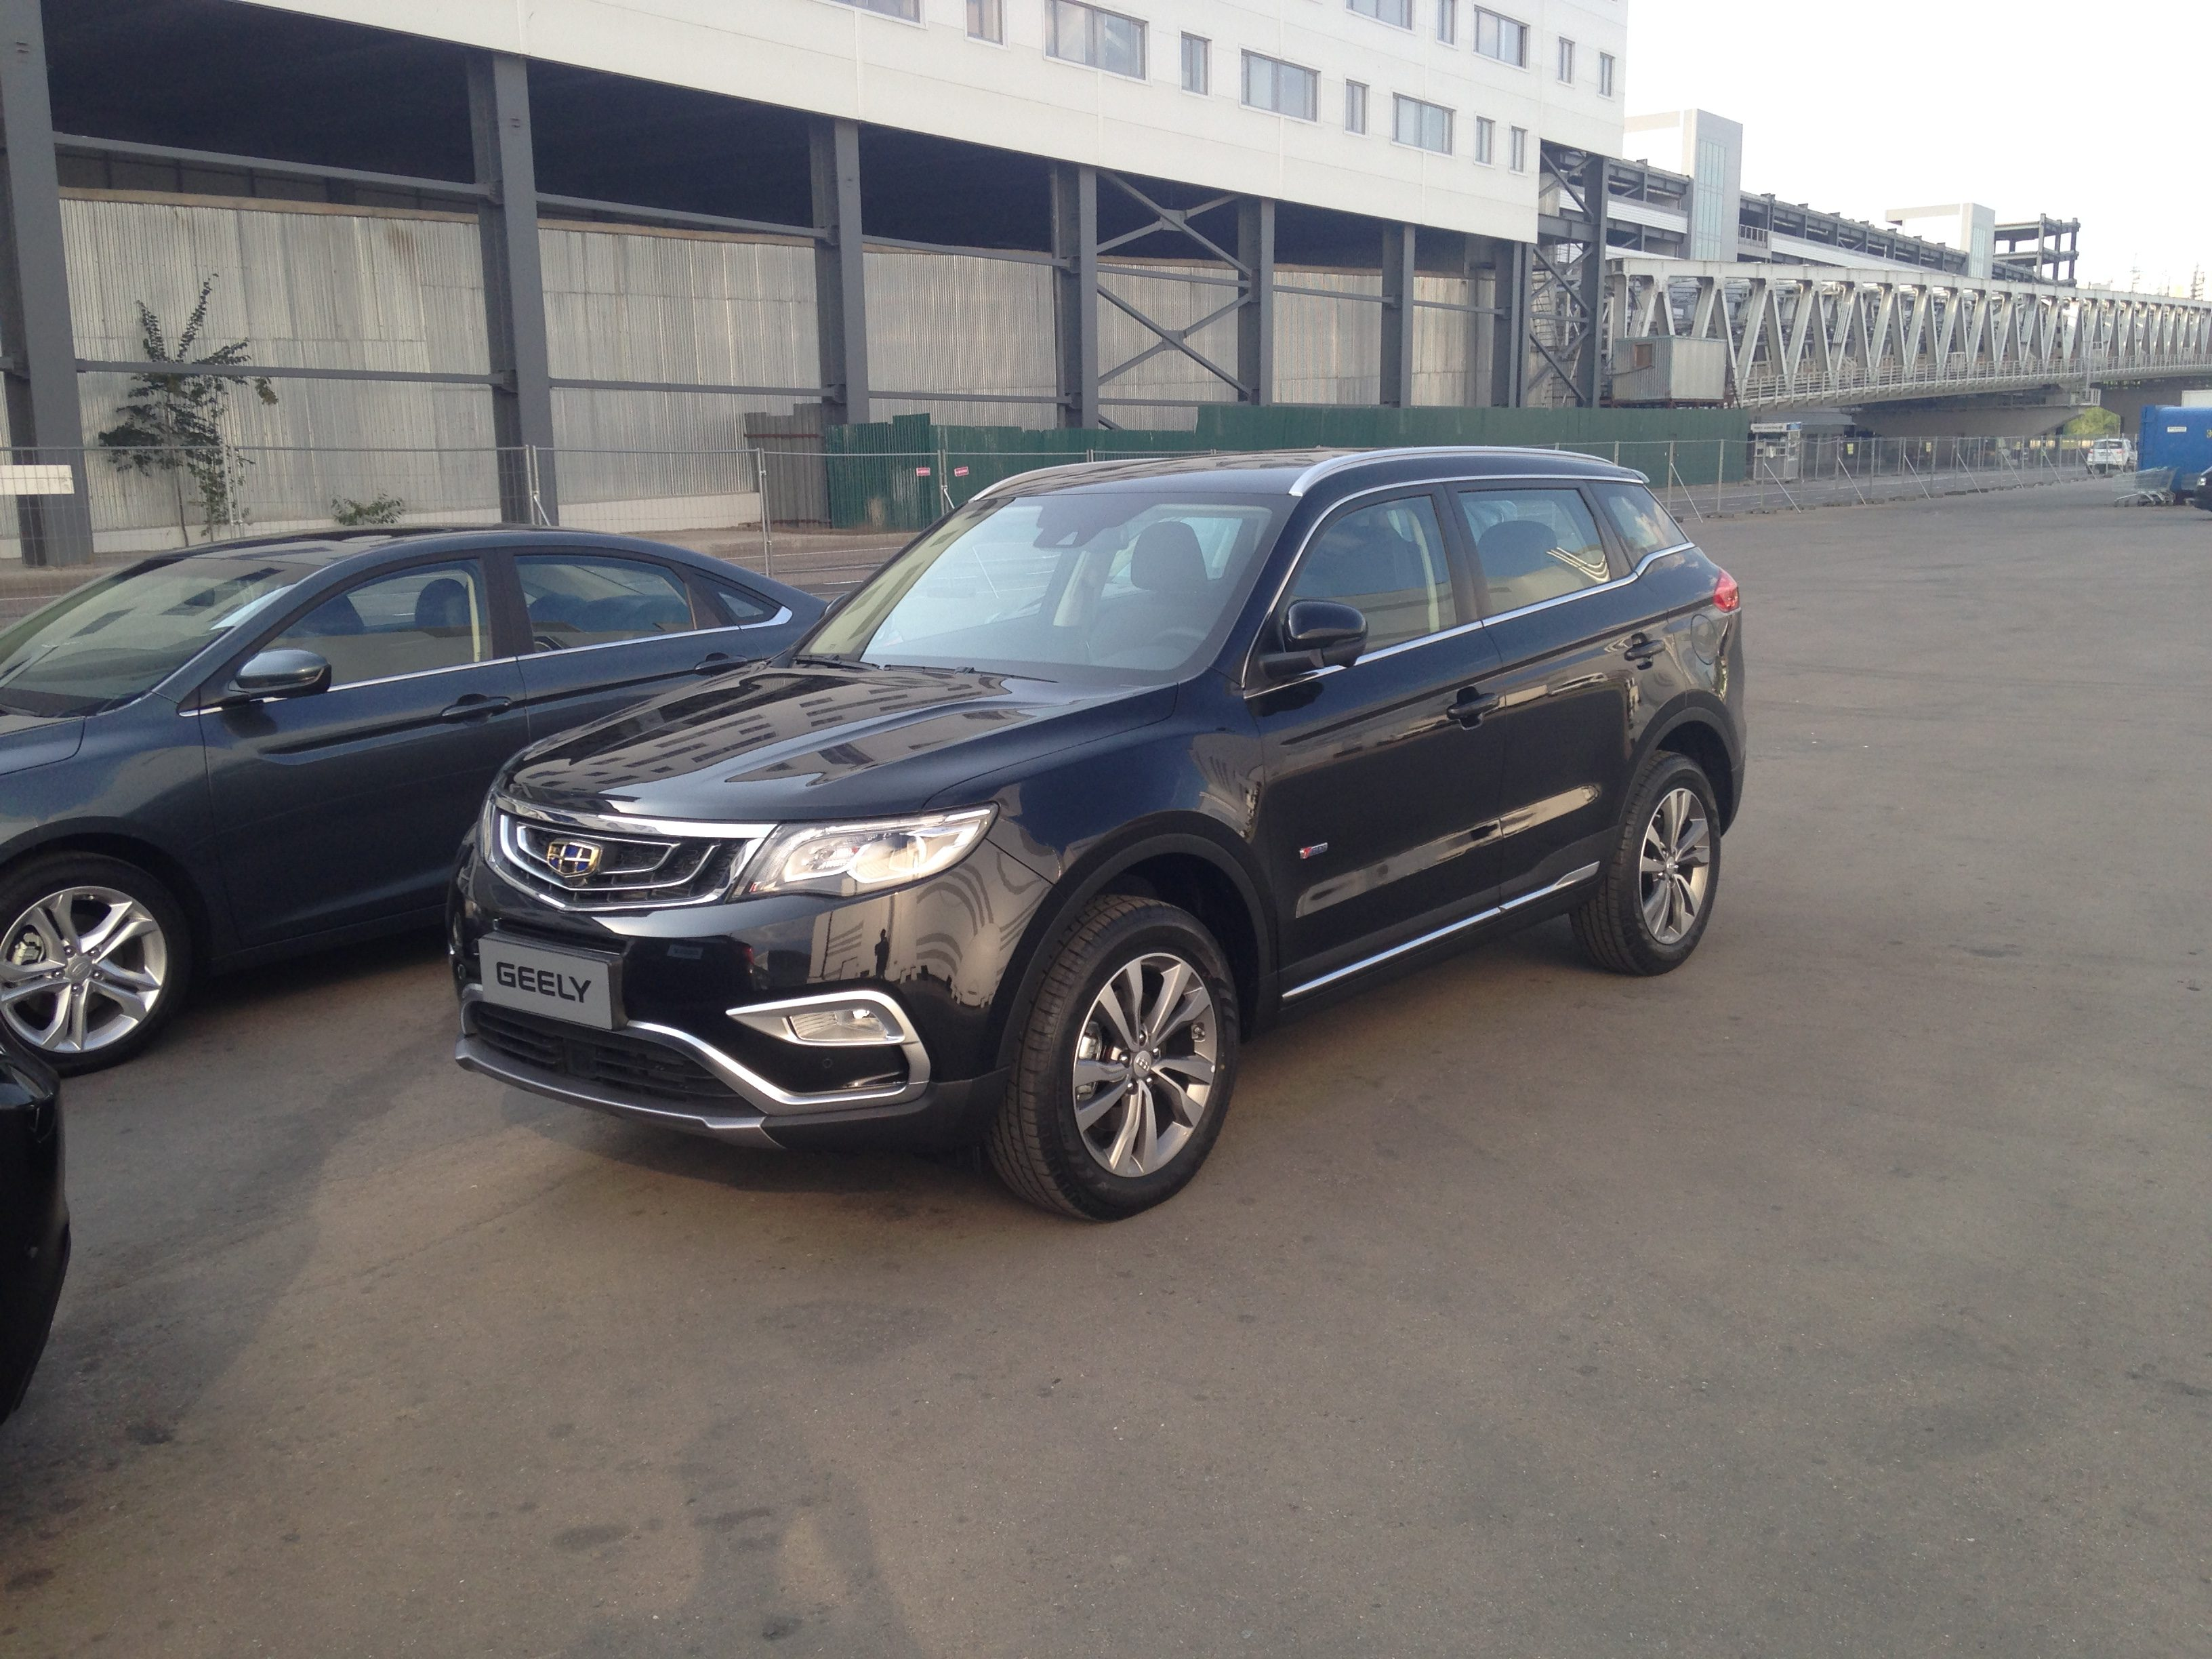 Geely Emgrand NL3 ММАС 2016